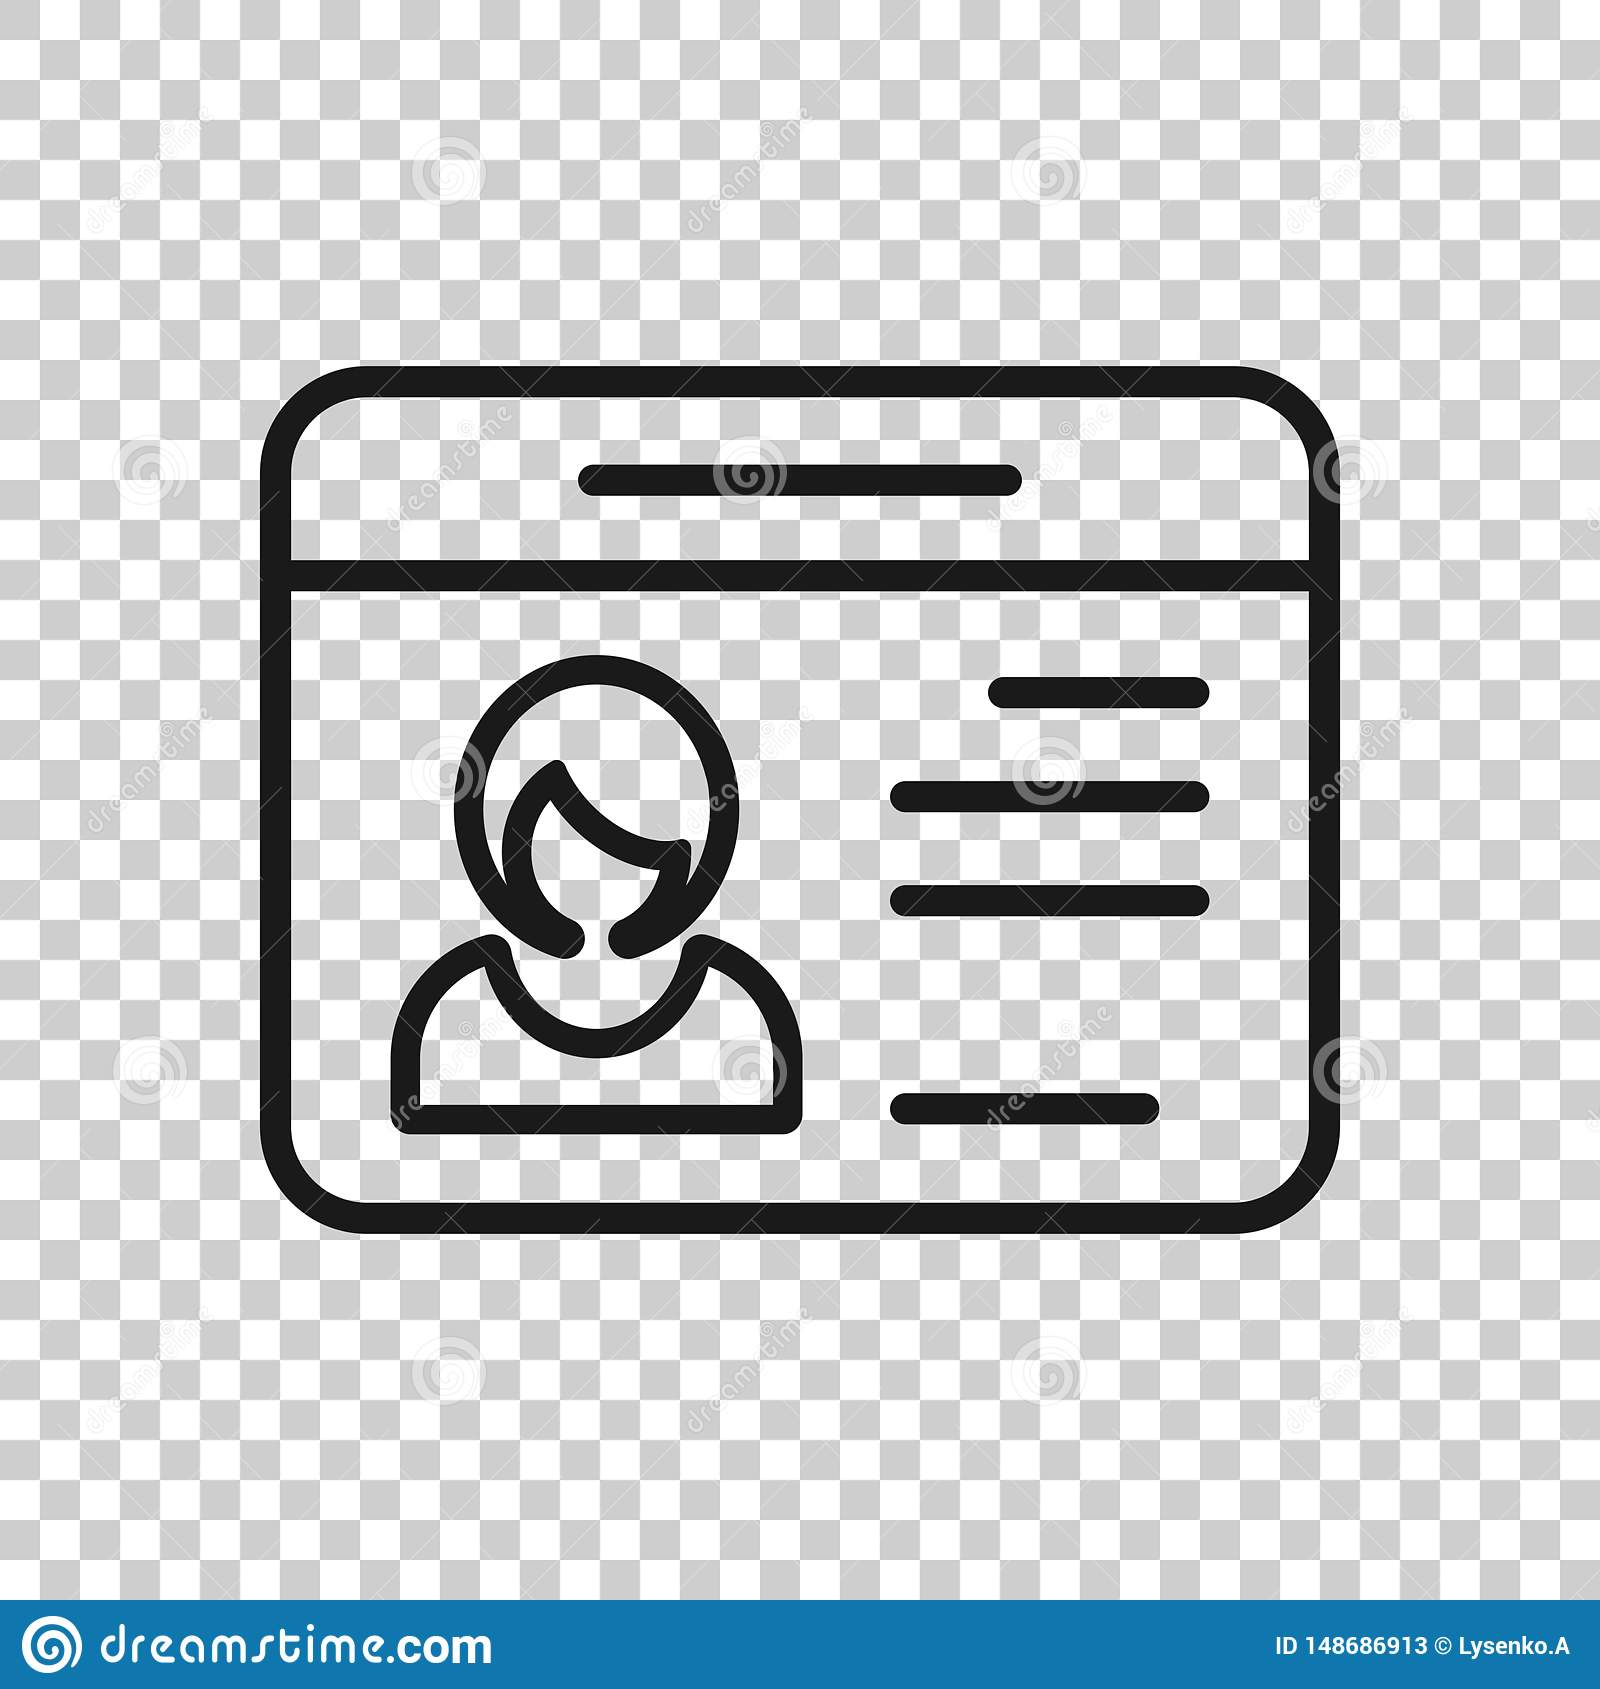 Id card icon in transparent style. Identity tag vector illustration on isolated background. Driver licence business concept